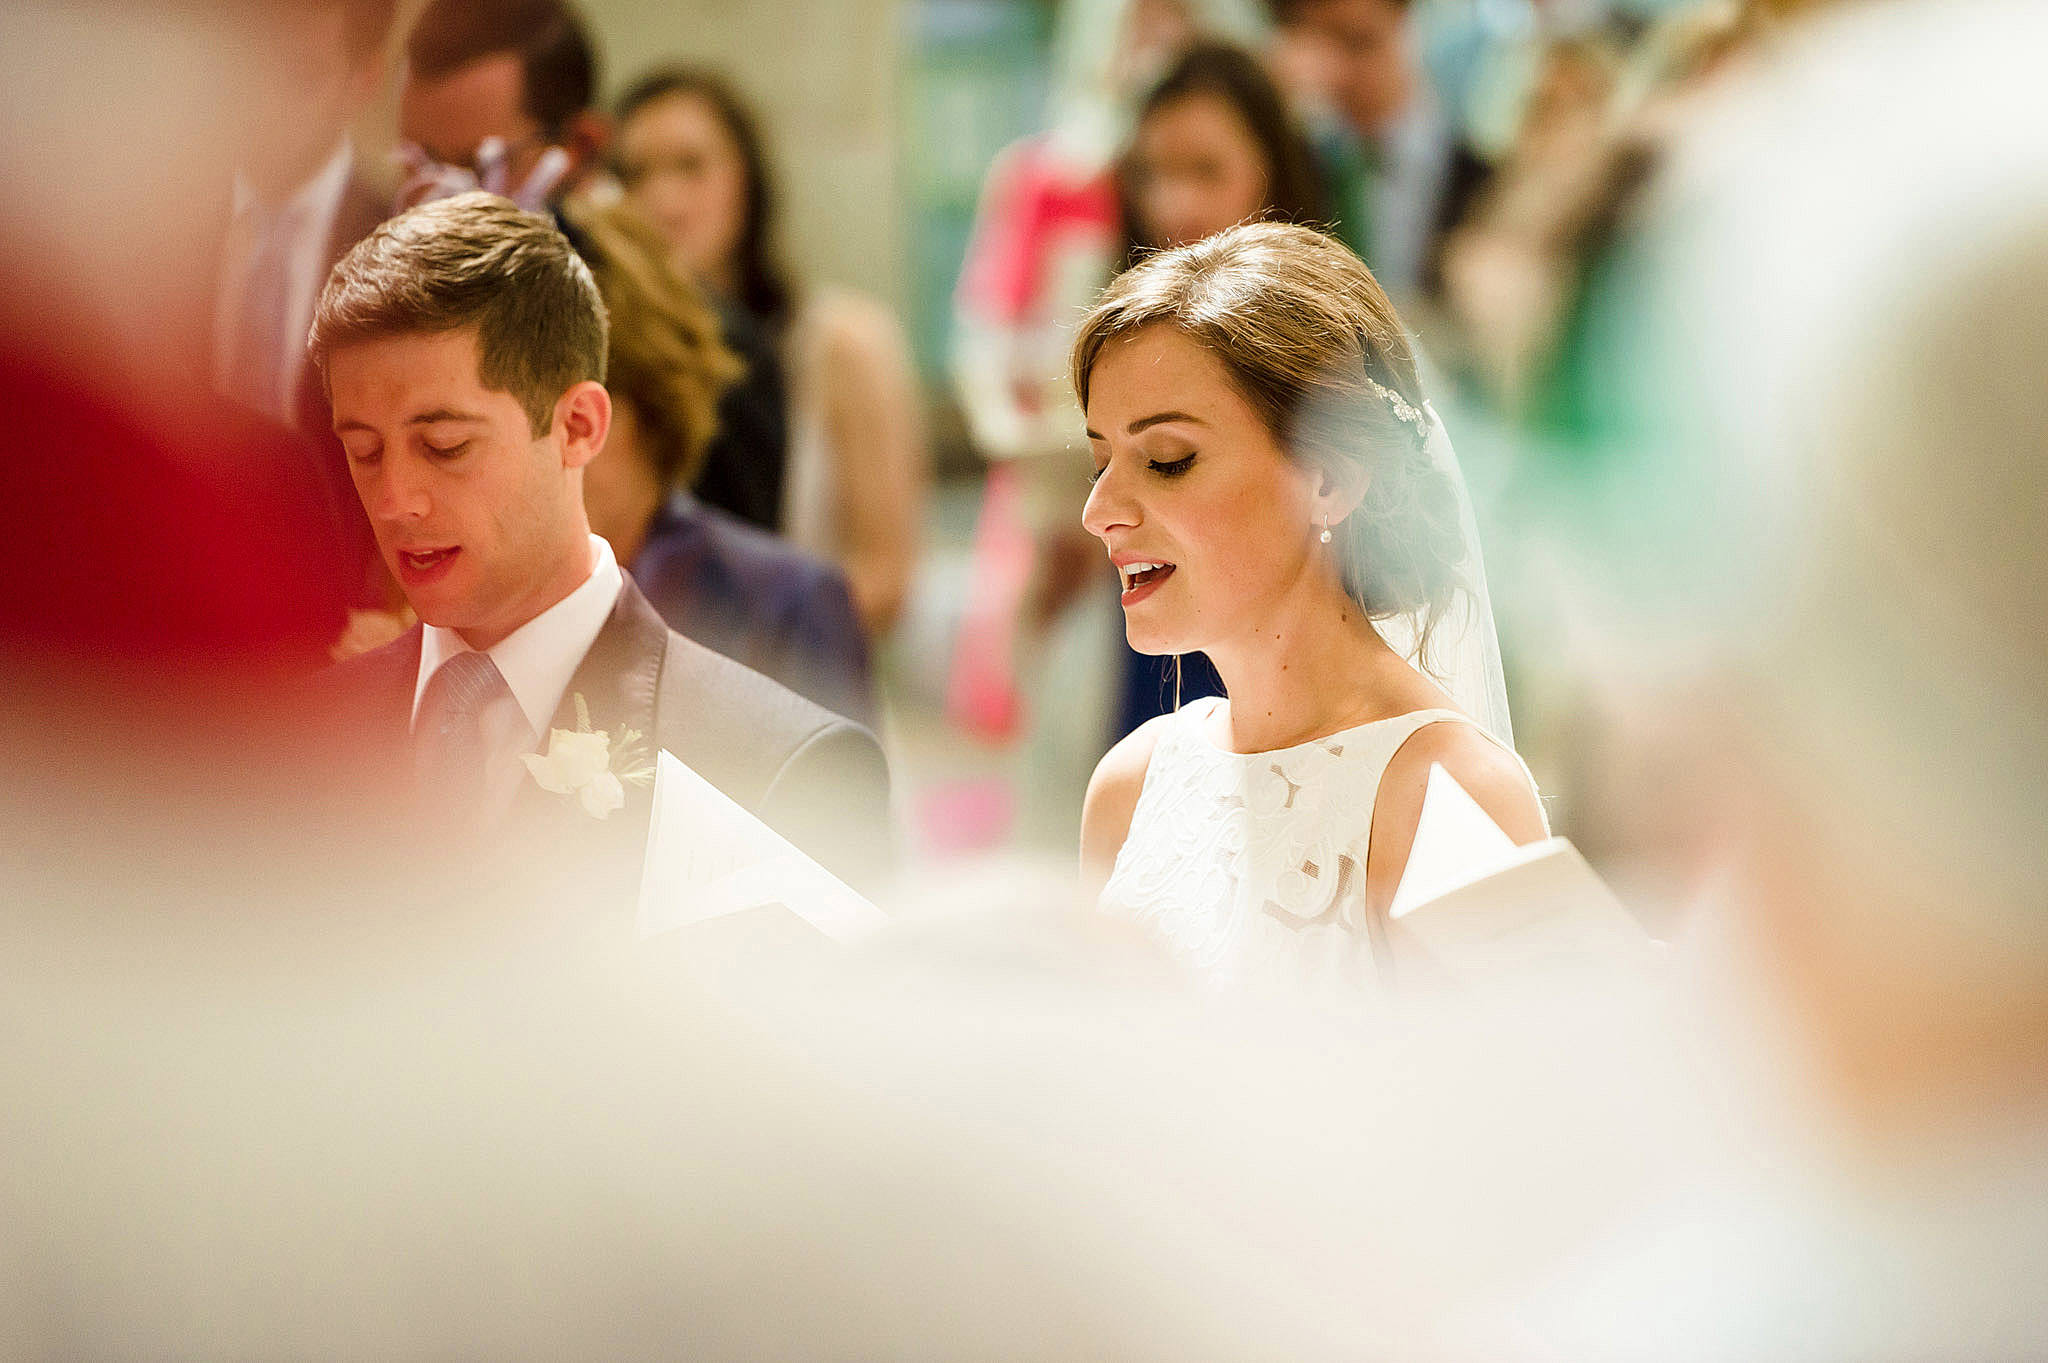 birtsmorton court wedding photography 30 - Birtsmorton Court wedding photography - Lizzie + Lloyd